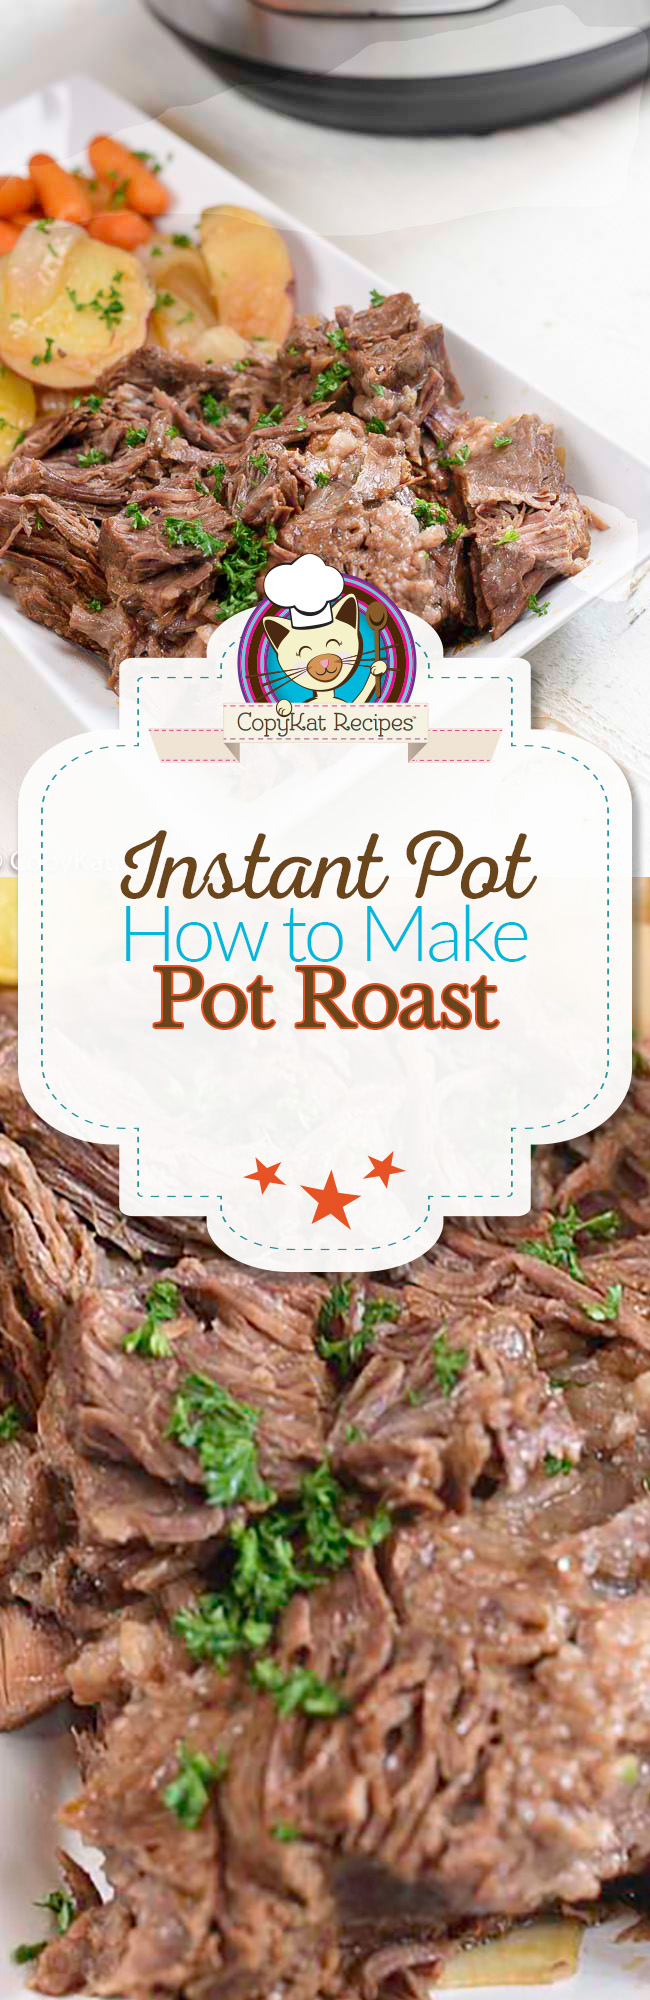 You can make a flavorful Pot Roast in your Instant Pot, it's so easy to prepare a pot roast.